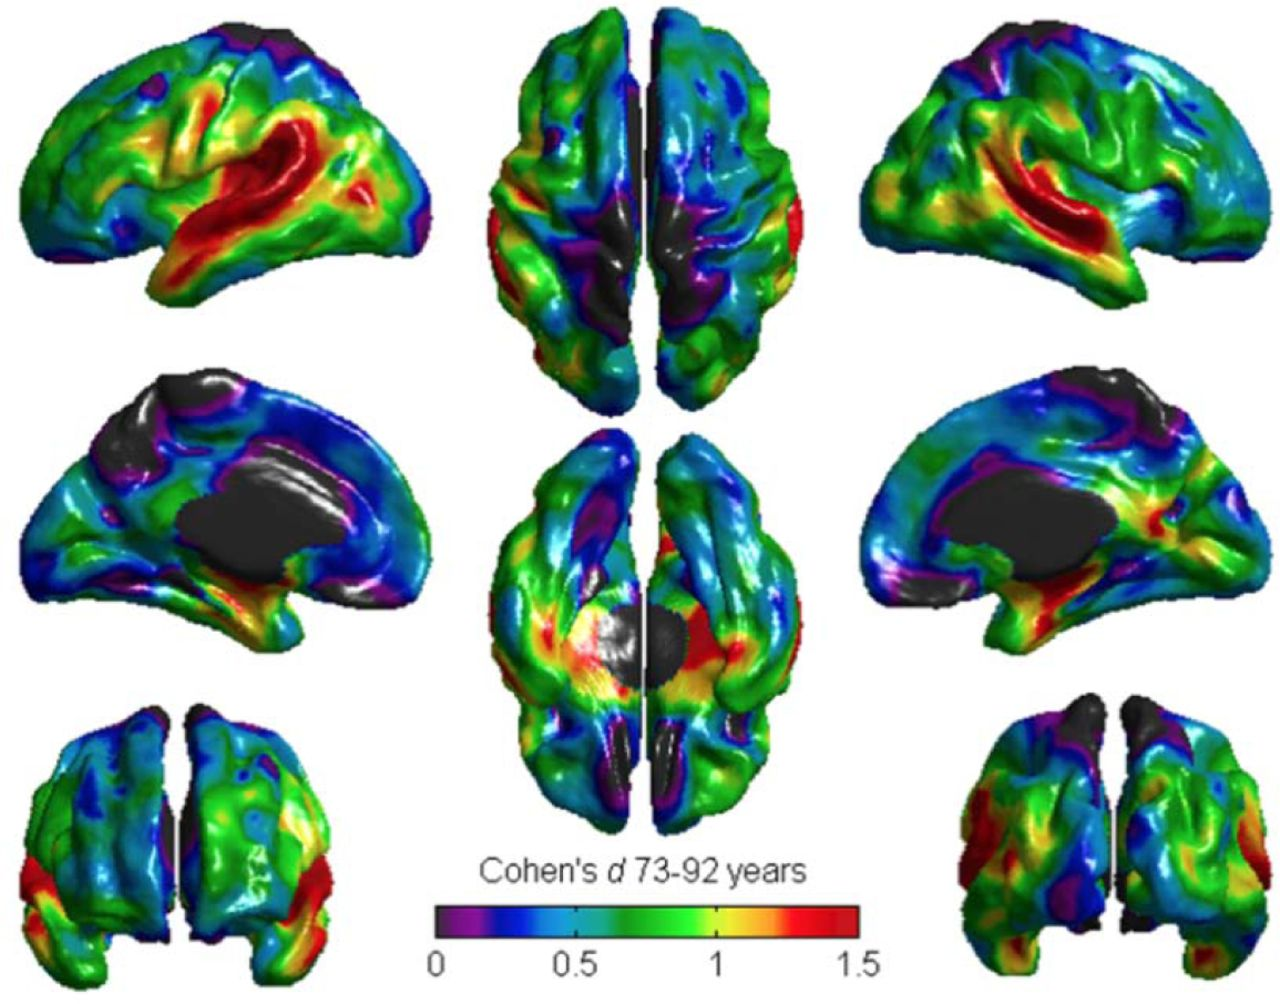 Brain structural differences between 73- and 92-year olds matched